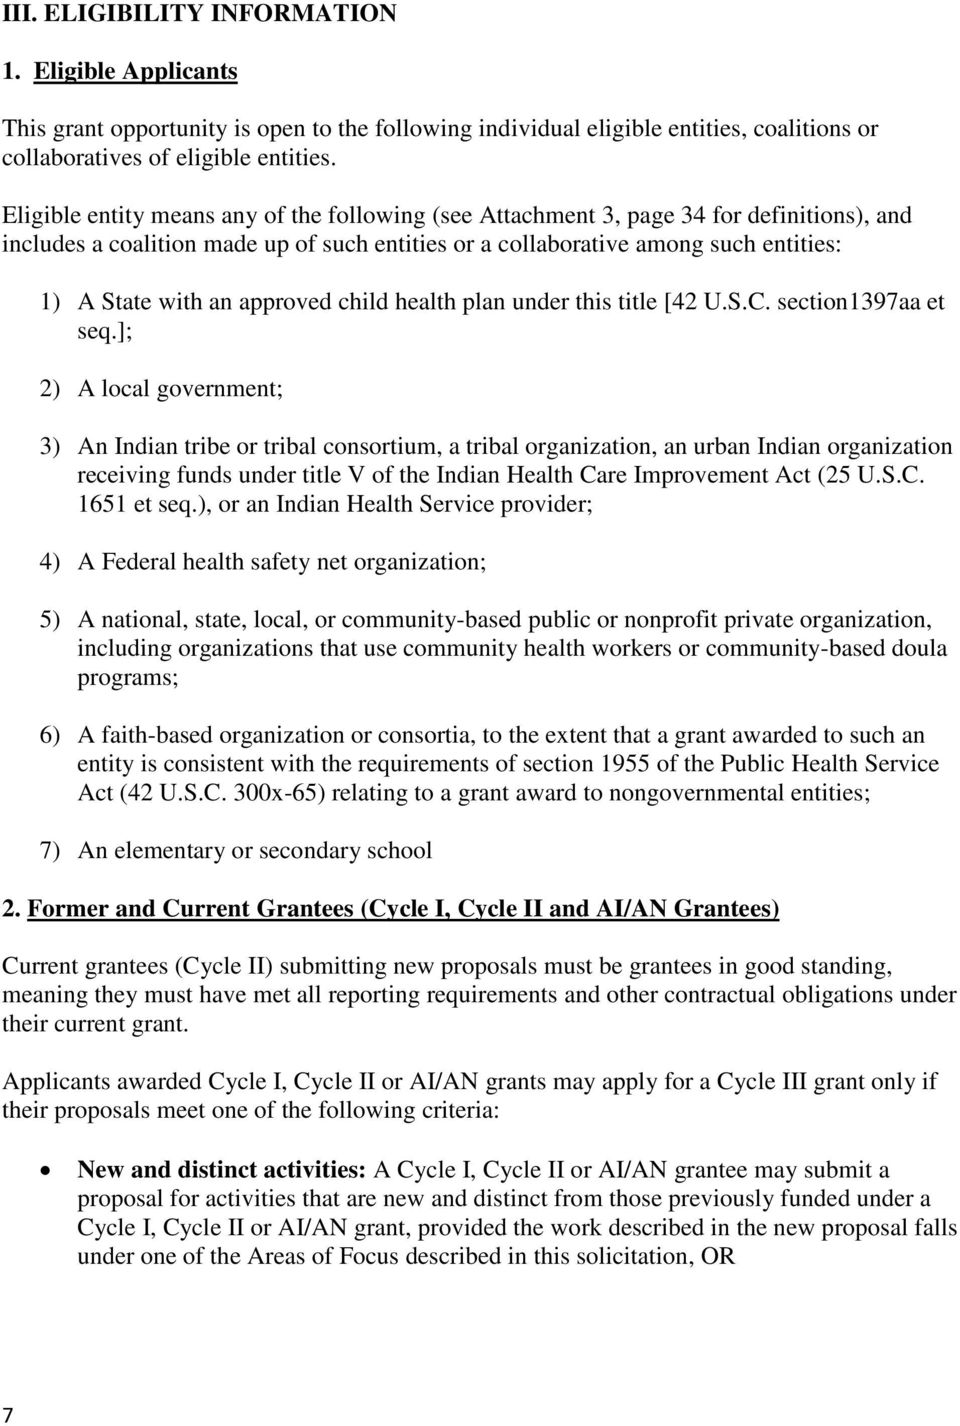 approved child health plan under this title [42 U.S.C. section1397aa et seq.